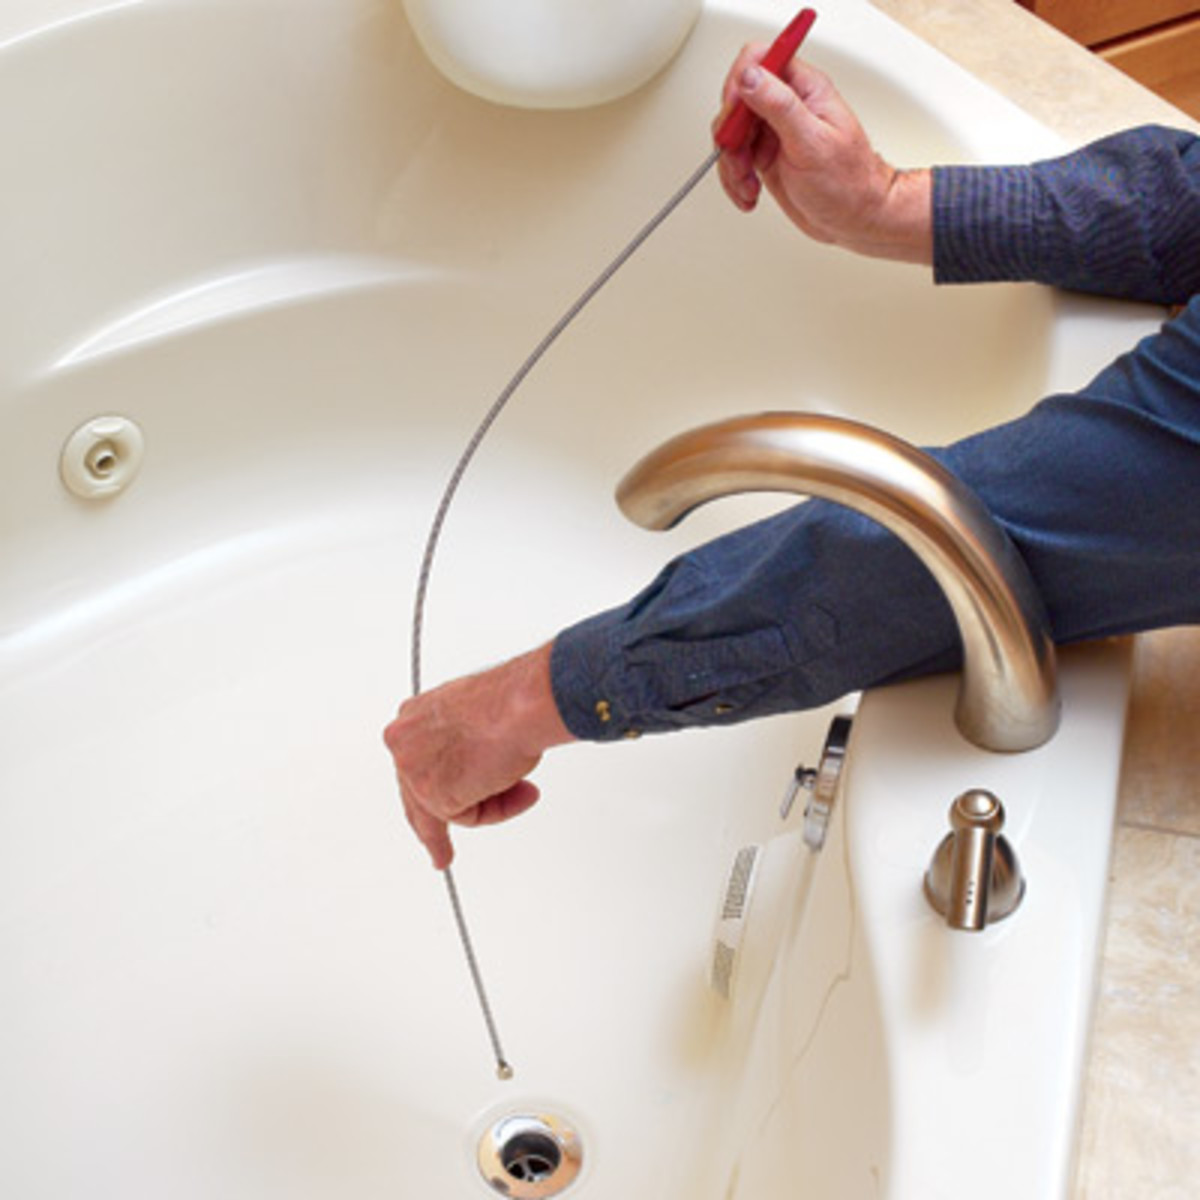 how to stop a squeak y pipe behind a wall water leaks and other plumbing tips hubpages. Black Bedroom Furniture Sets. Home Design Ideas